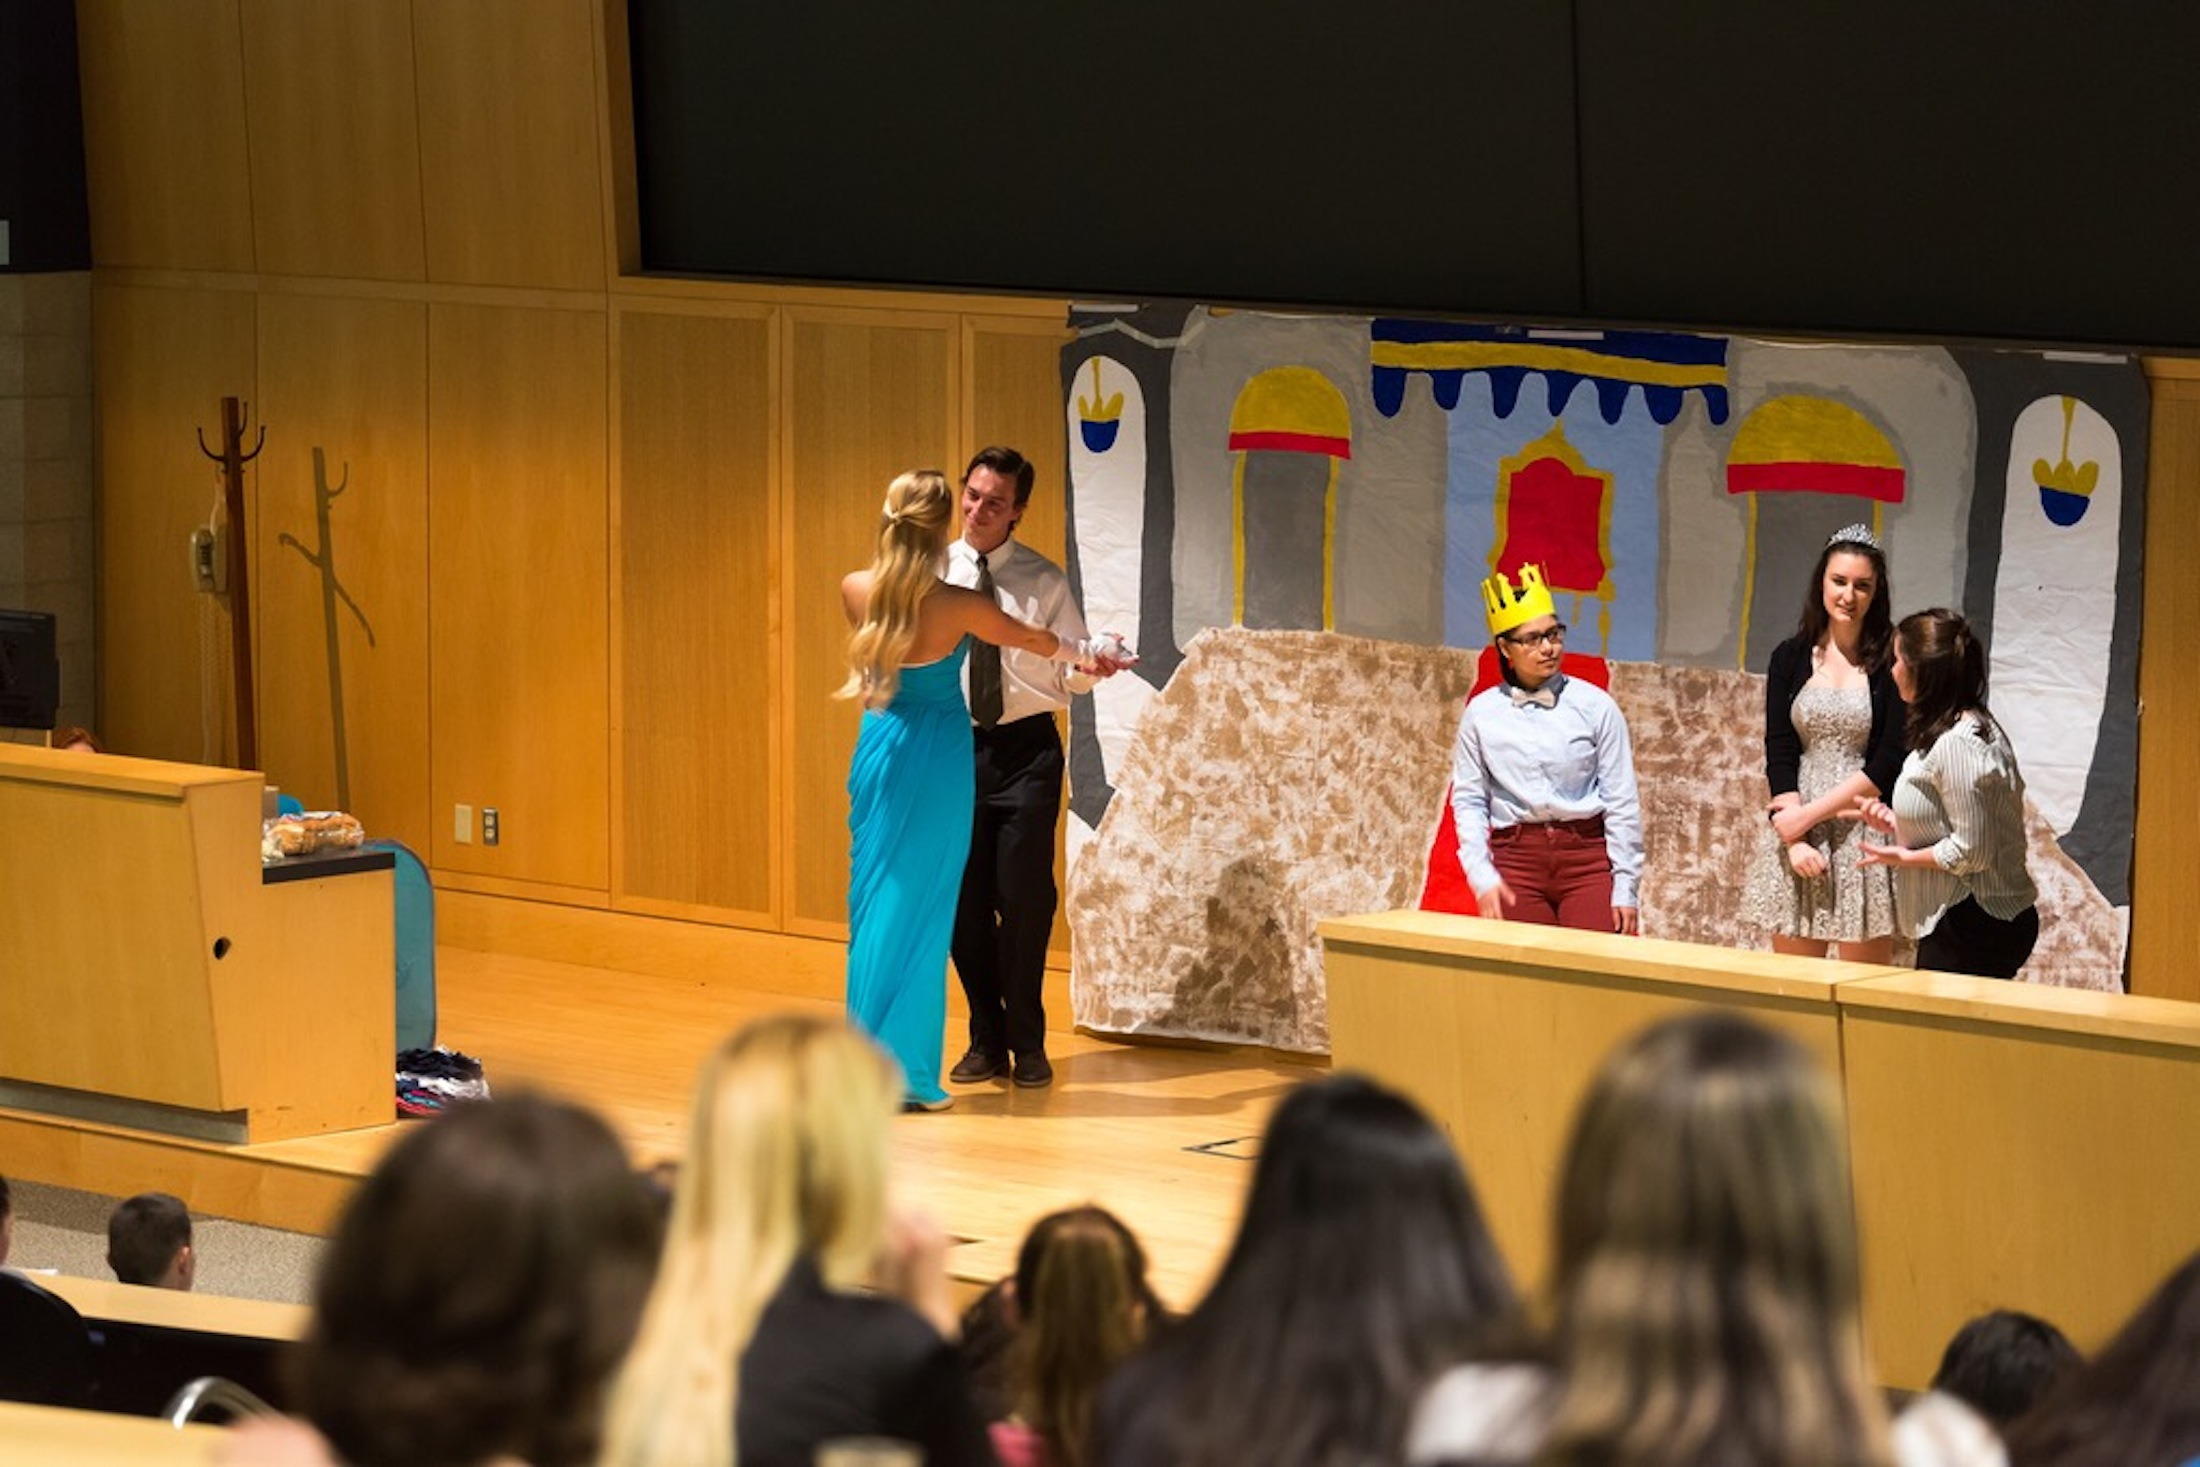 ASL Club and students hosts Deaf Awareness Day in ITE C-80 Thursday evening. The night consisted of plays on for the audience to enjoy. (Tyler Benton/The Daily Campus)